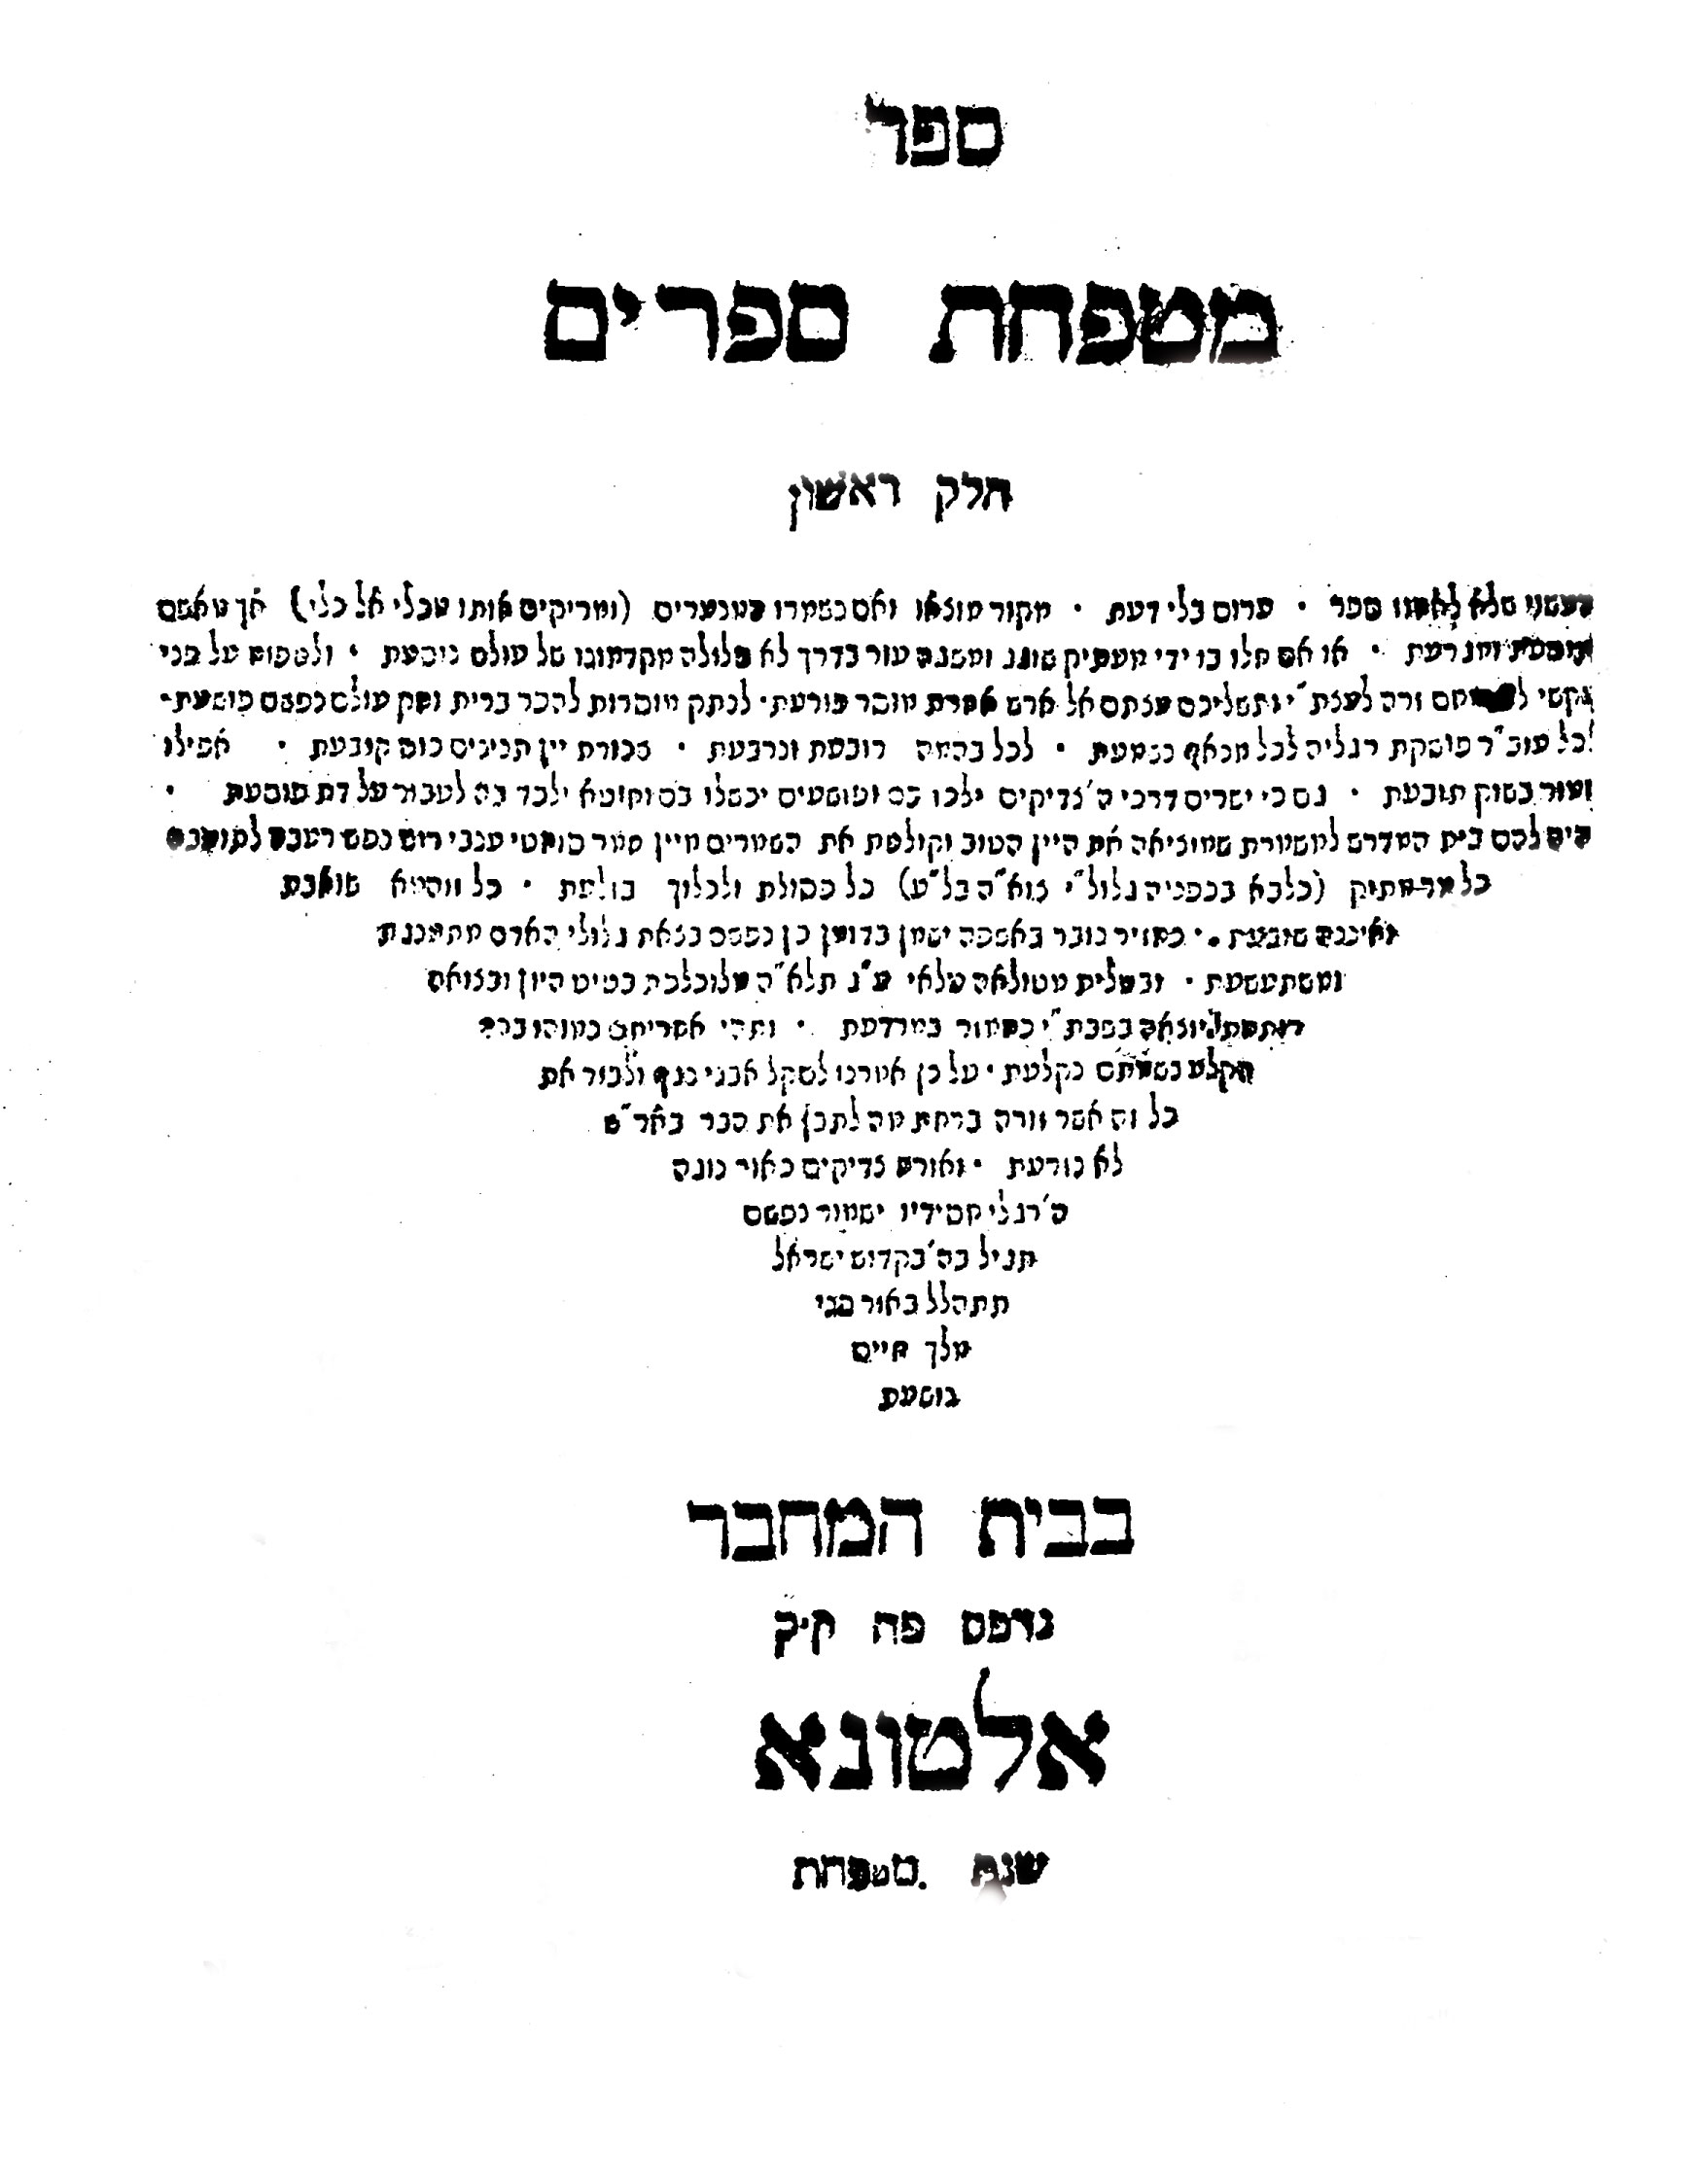 Mitpahat Sefarim, Rabbi Jacob Emden's criticism of the Zohar, was published in Altuna in 1798